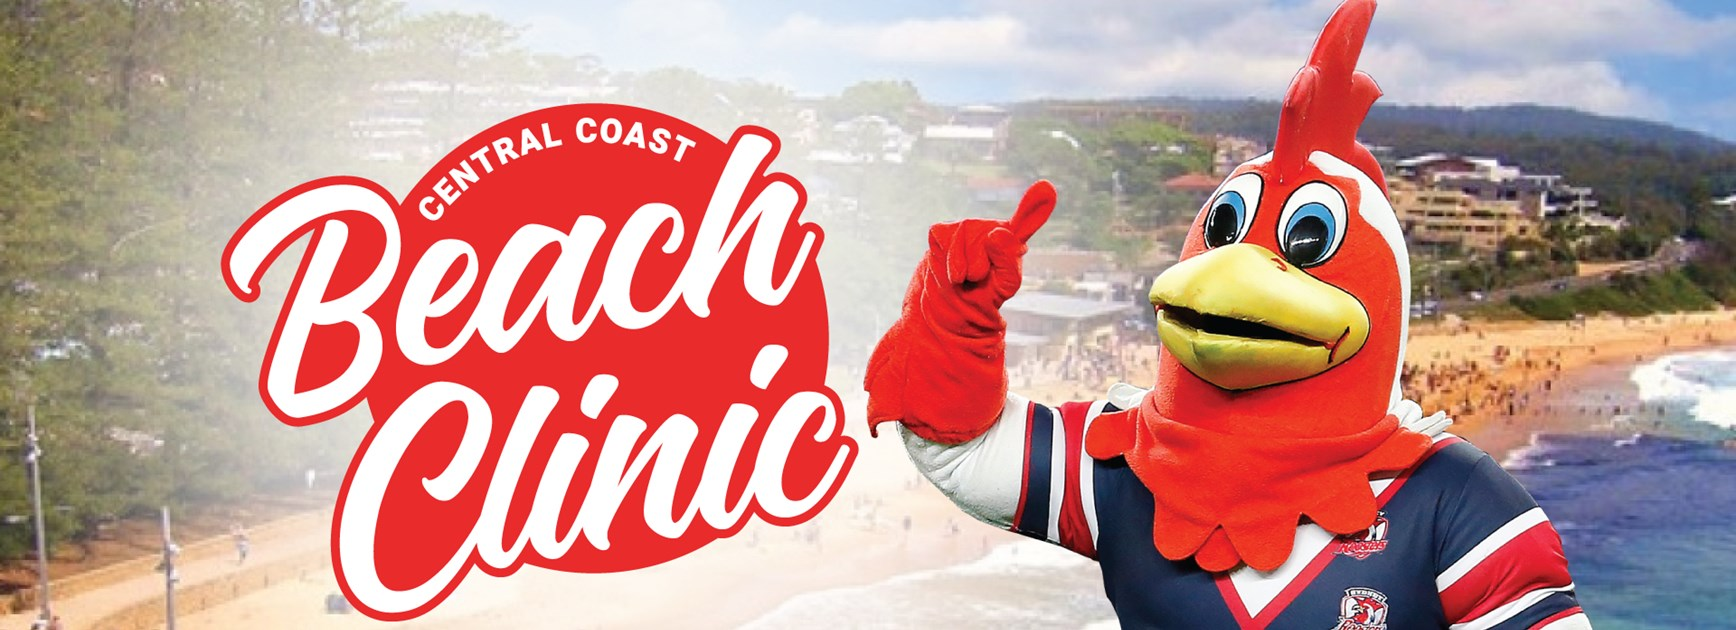 Sydney Roosters 2020 Beach Clinic